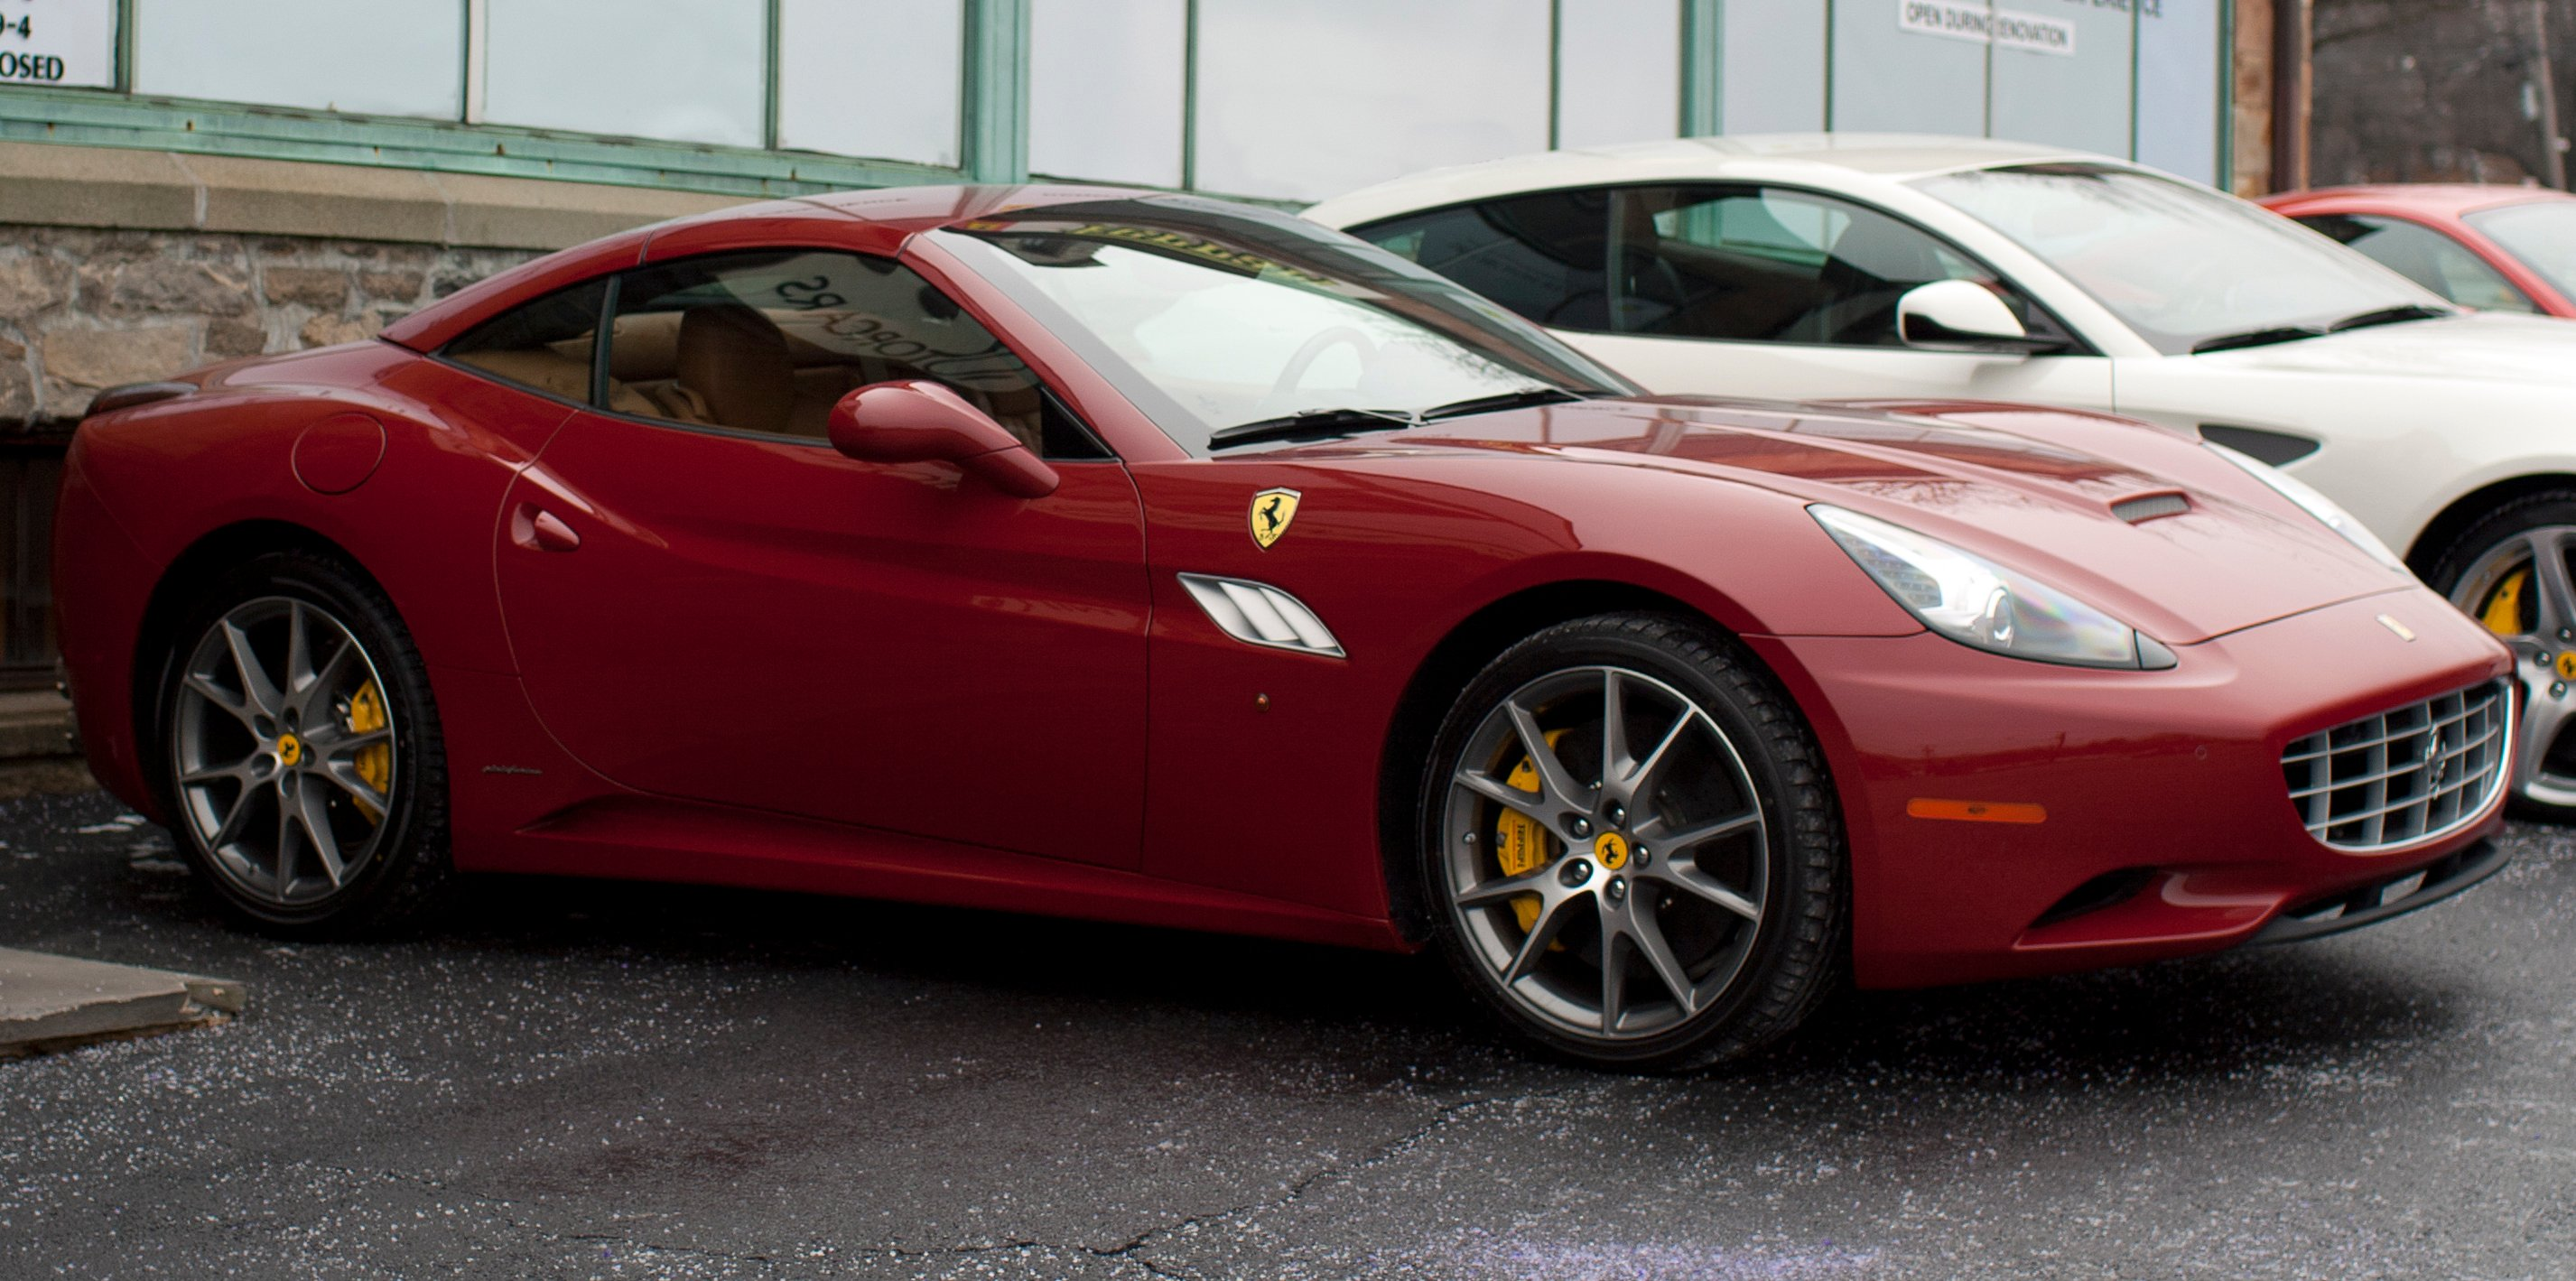 ferrari california wallpaper #3